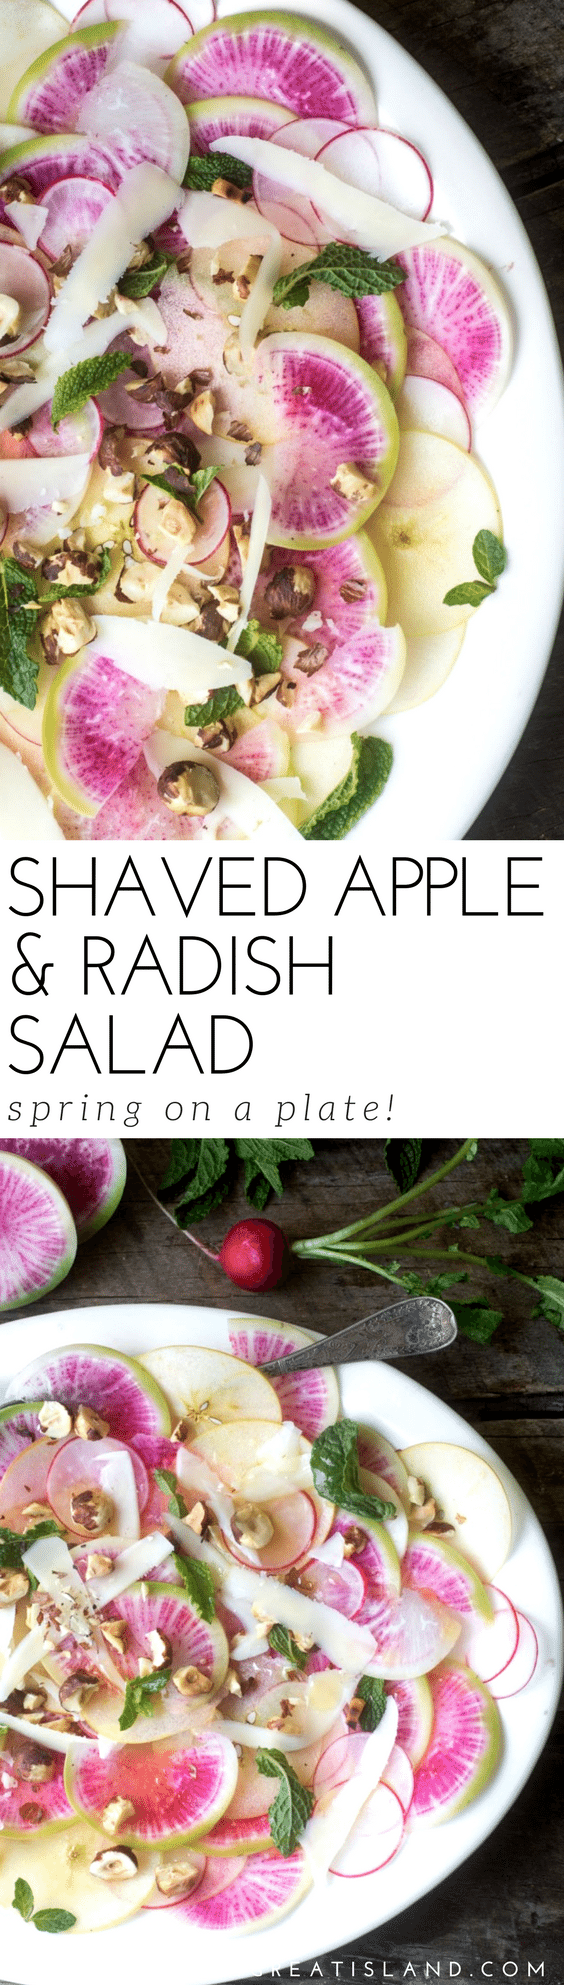 The pastel shades of this Shaved Apple and Radish Salad just scream spring --- it's perfect for a Mother's Day or Easter brunch, or maybe a date night dinner for two . #salad #shavedsalad #radishes #healthy #lowcalorie #weightwatchers #paleo #whole30 #glutenfree #lowfat #Easter #mothersday #brunch #shower